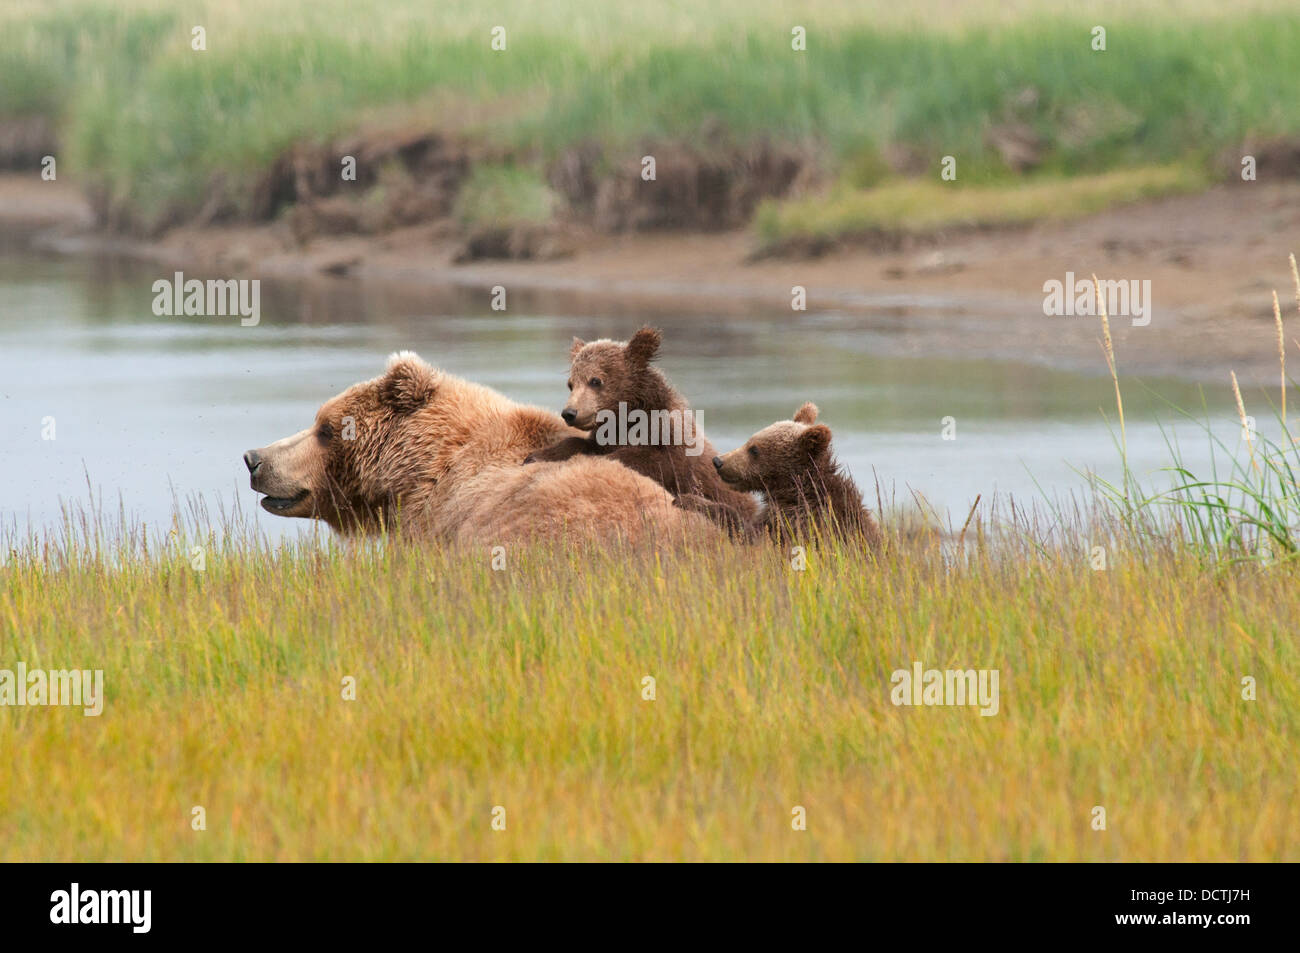 A Brown Grizzly Bear (Ursus Arctos Horribilis) With Her Two Cubs; Alaska, United States Of America - Stock Image